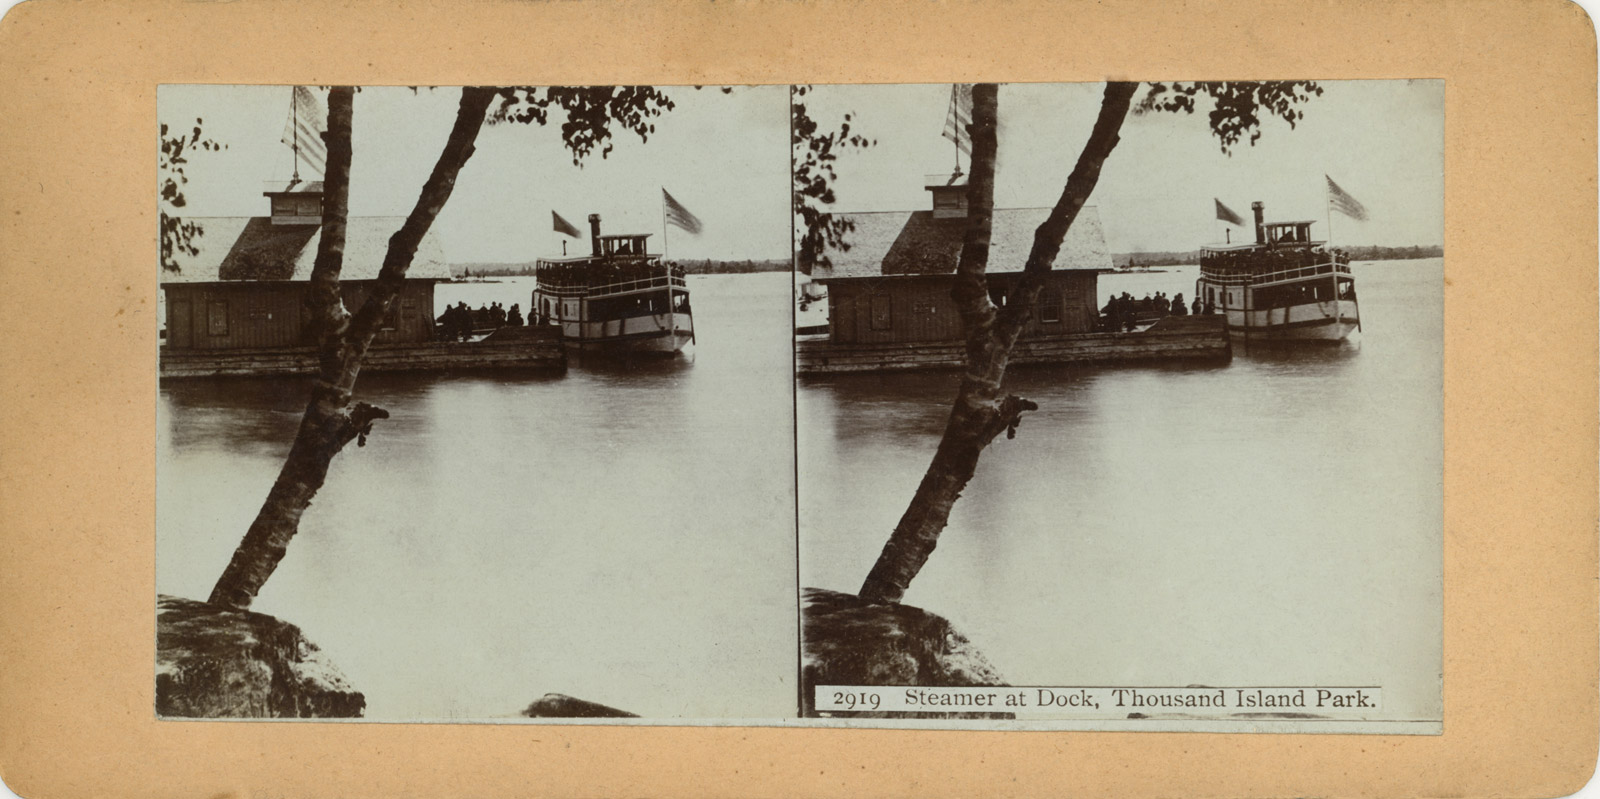 Steamer at Dock, Thousand Island Park.